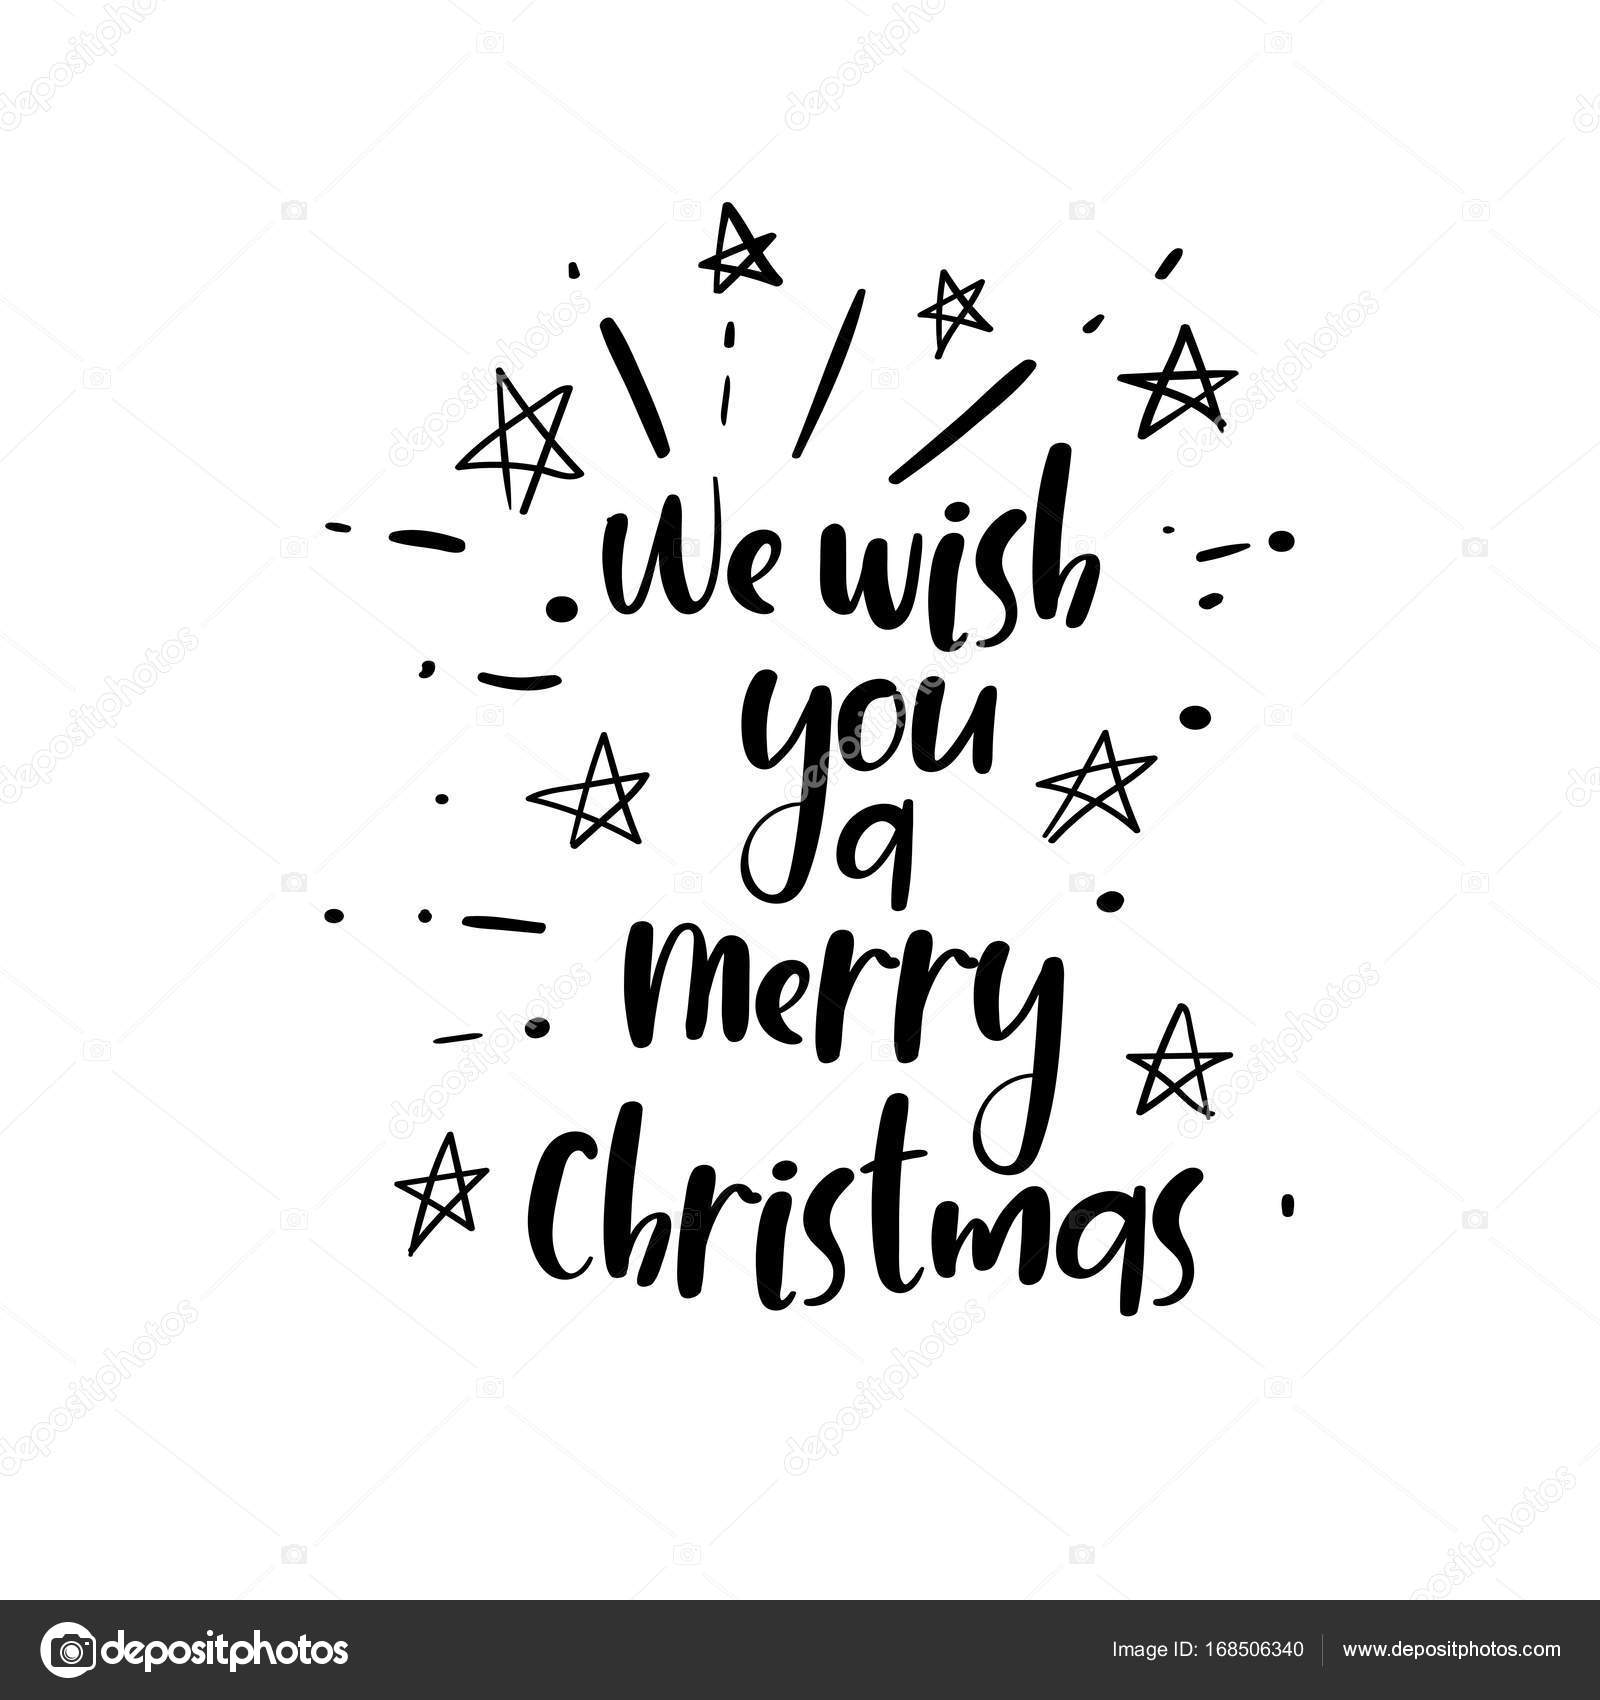 We wish you a Merry Christmas handwritten text for greeting card ...